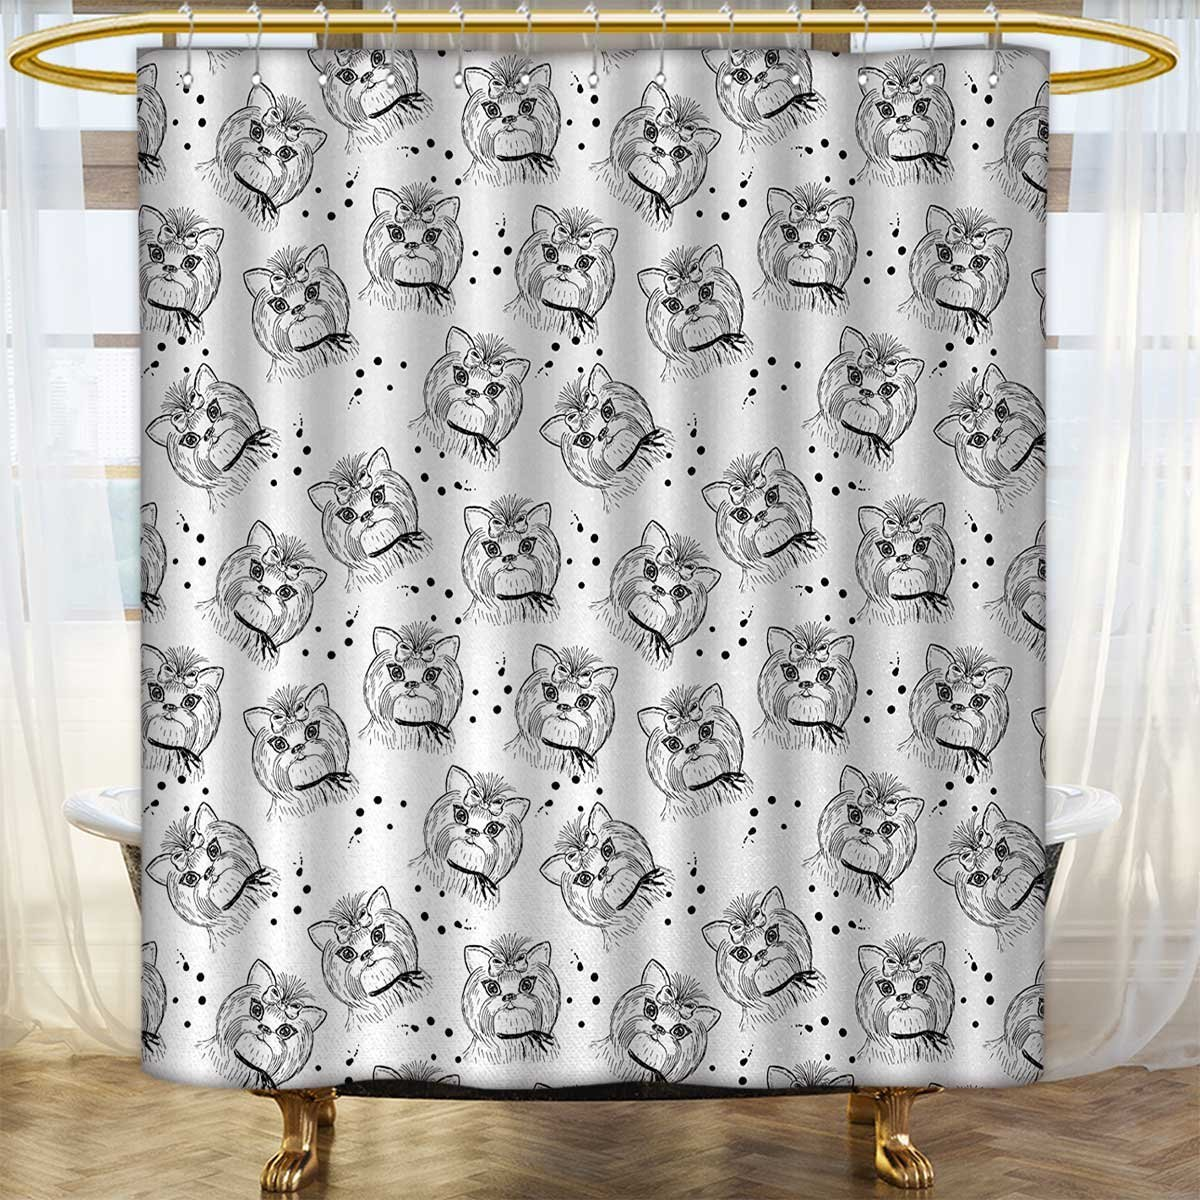 color13 36 x 84 (inch) color13 36 x 84 (inch) Anhounine Black and White Shower Curtains 3D Digital Printing Cute Dog Pattern with Buckle and Collar Monochrome House Pet Illustration Satin Fabric Bathroom Washable 36 x84  Black White